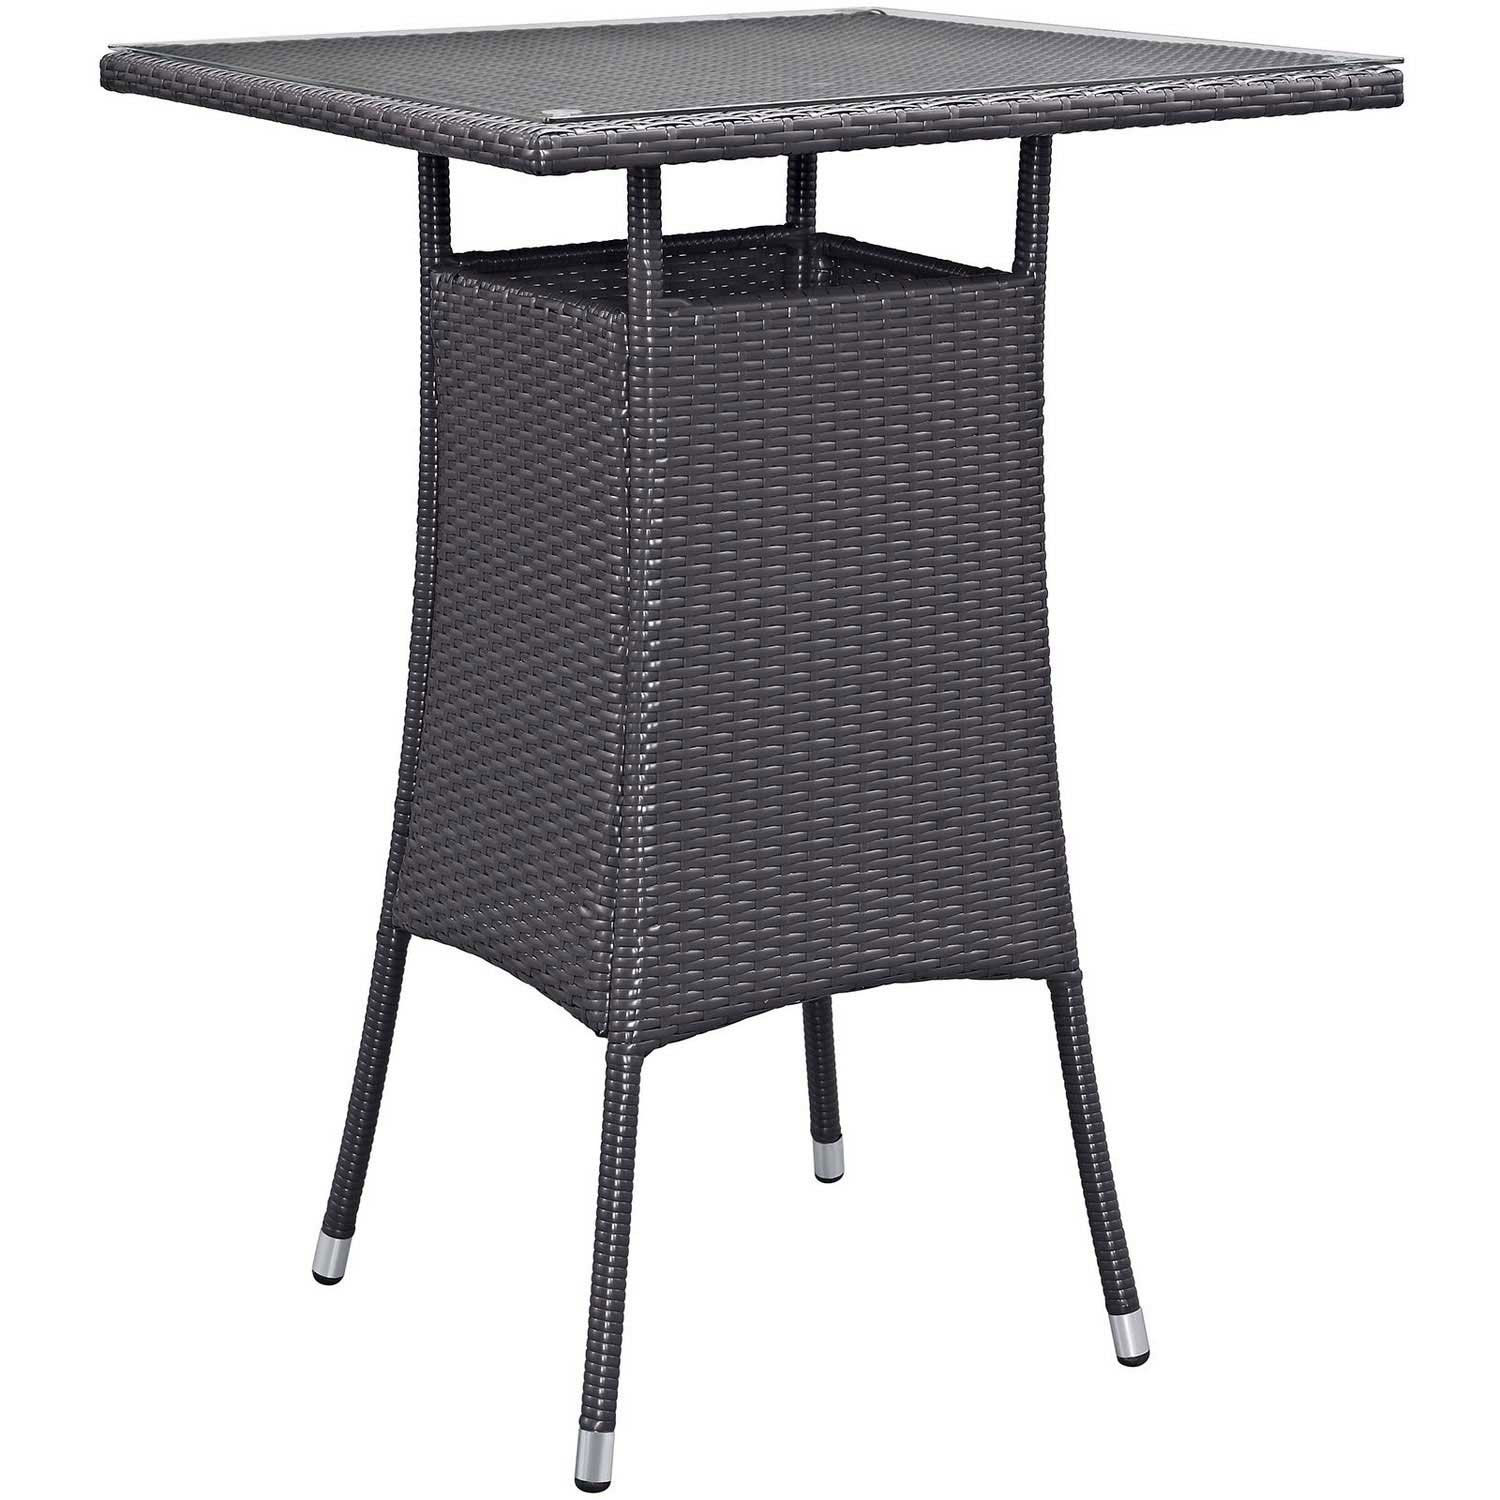 Modway Convene Small Outdoor Patio Bar Table - Espresso